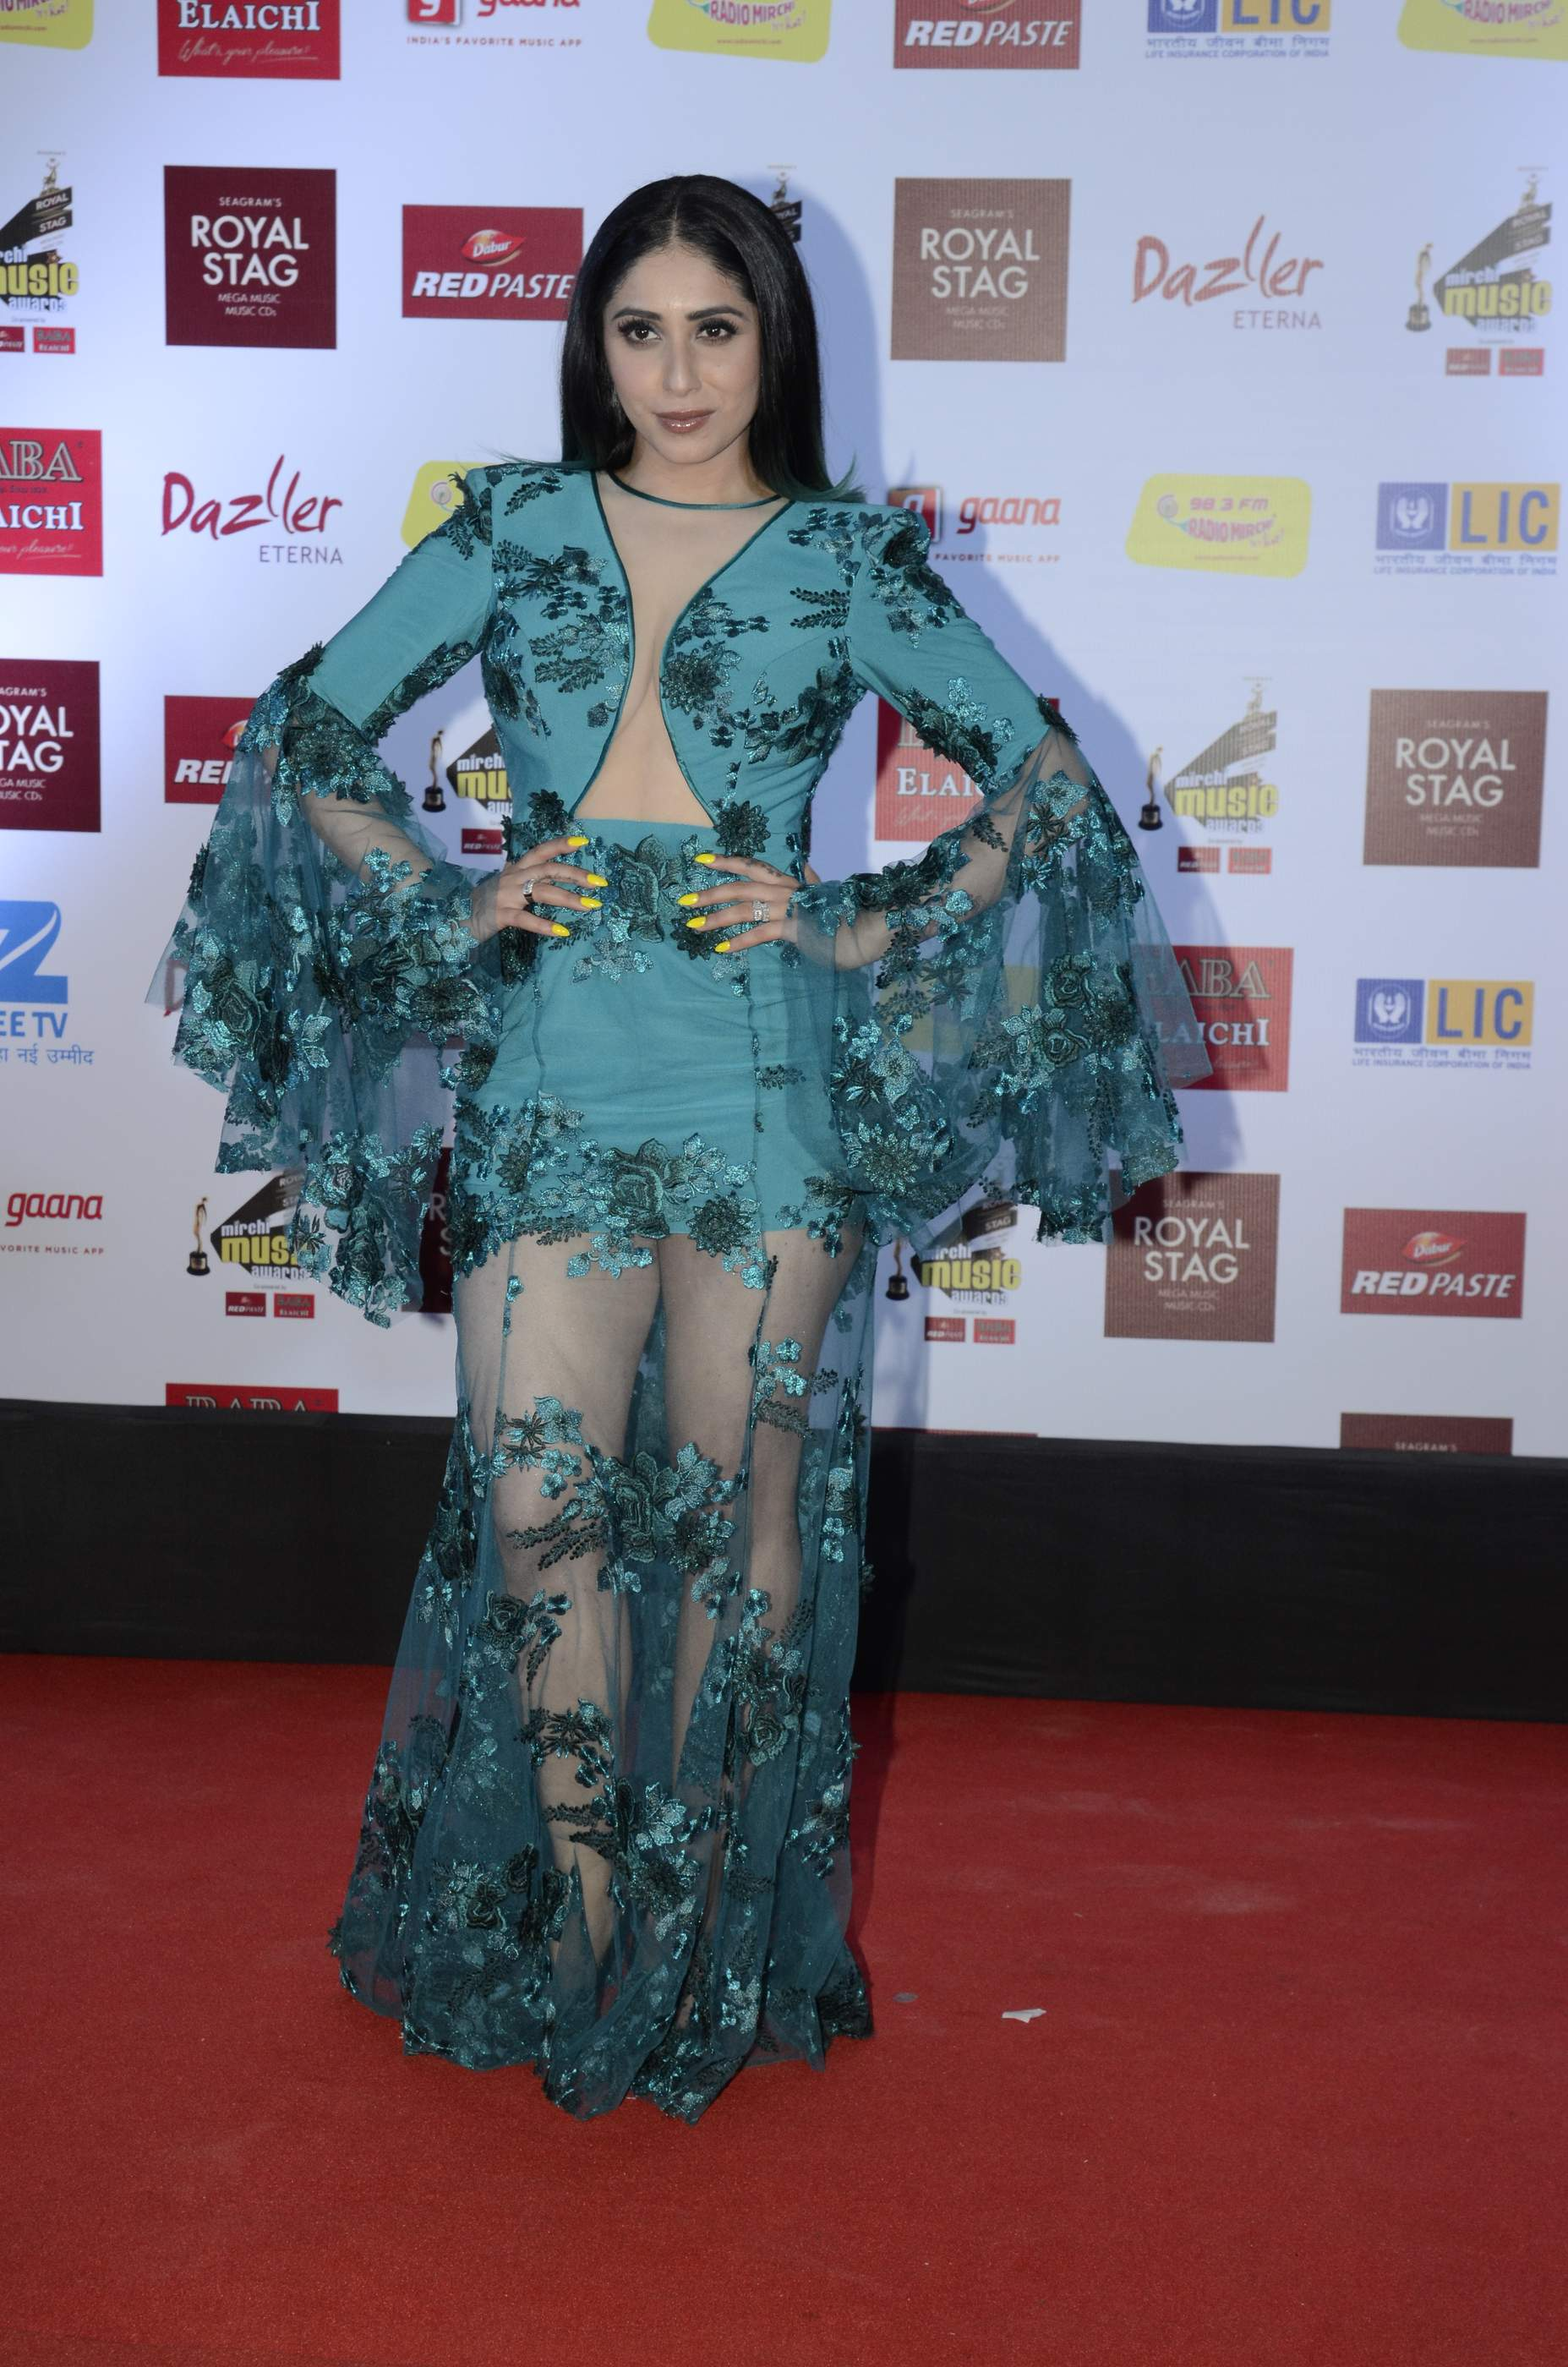 mirchi music HOT Celebs Dazzle At Mirchi Music Awards Event | Models | Actresses Radio Mirchi Awards Red Carpet 12